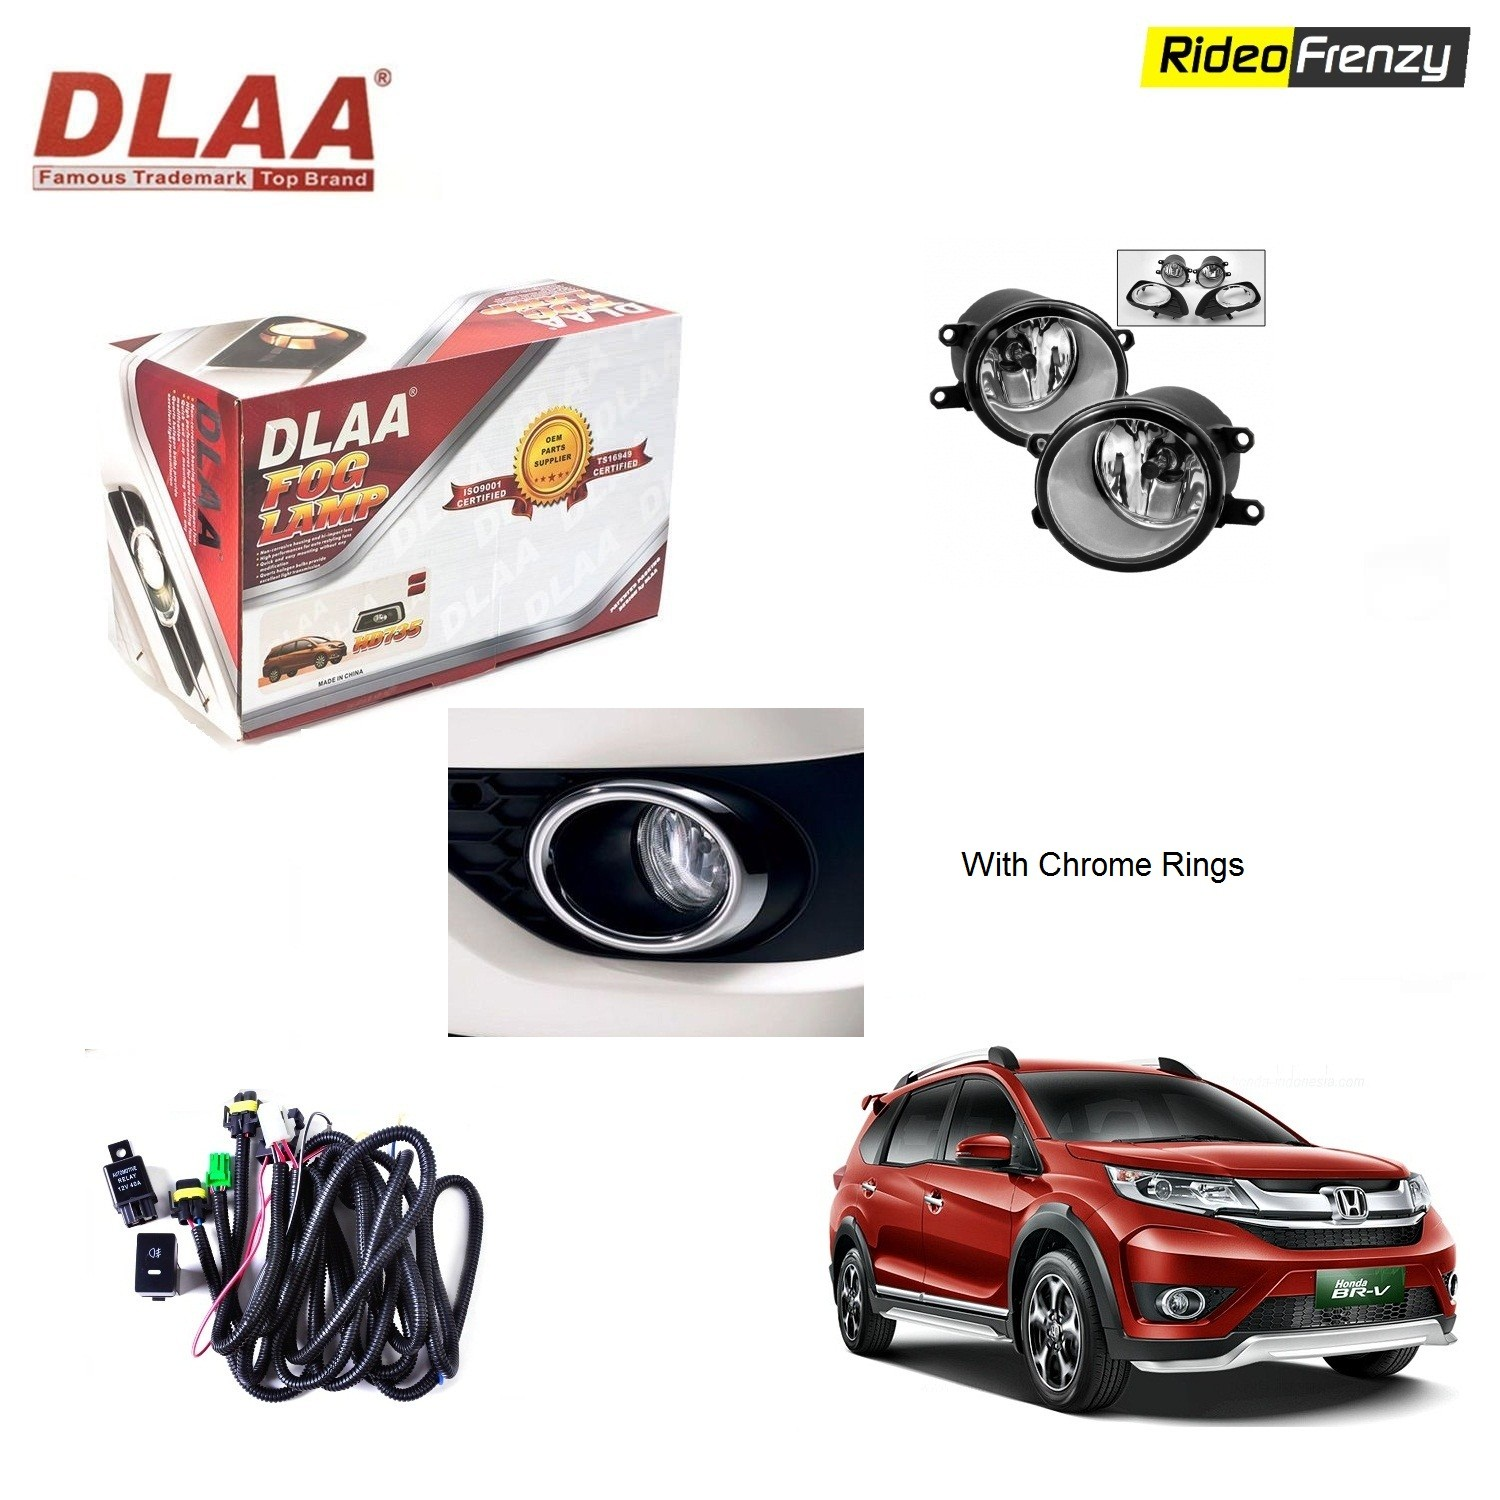 Buy Original Dlaa Honda Brv Fog Lamps With Wiring Kit Switch At Ford Aspire Harness Low Prices Rideofrenzy